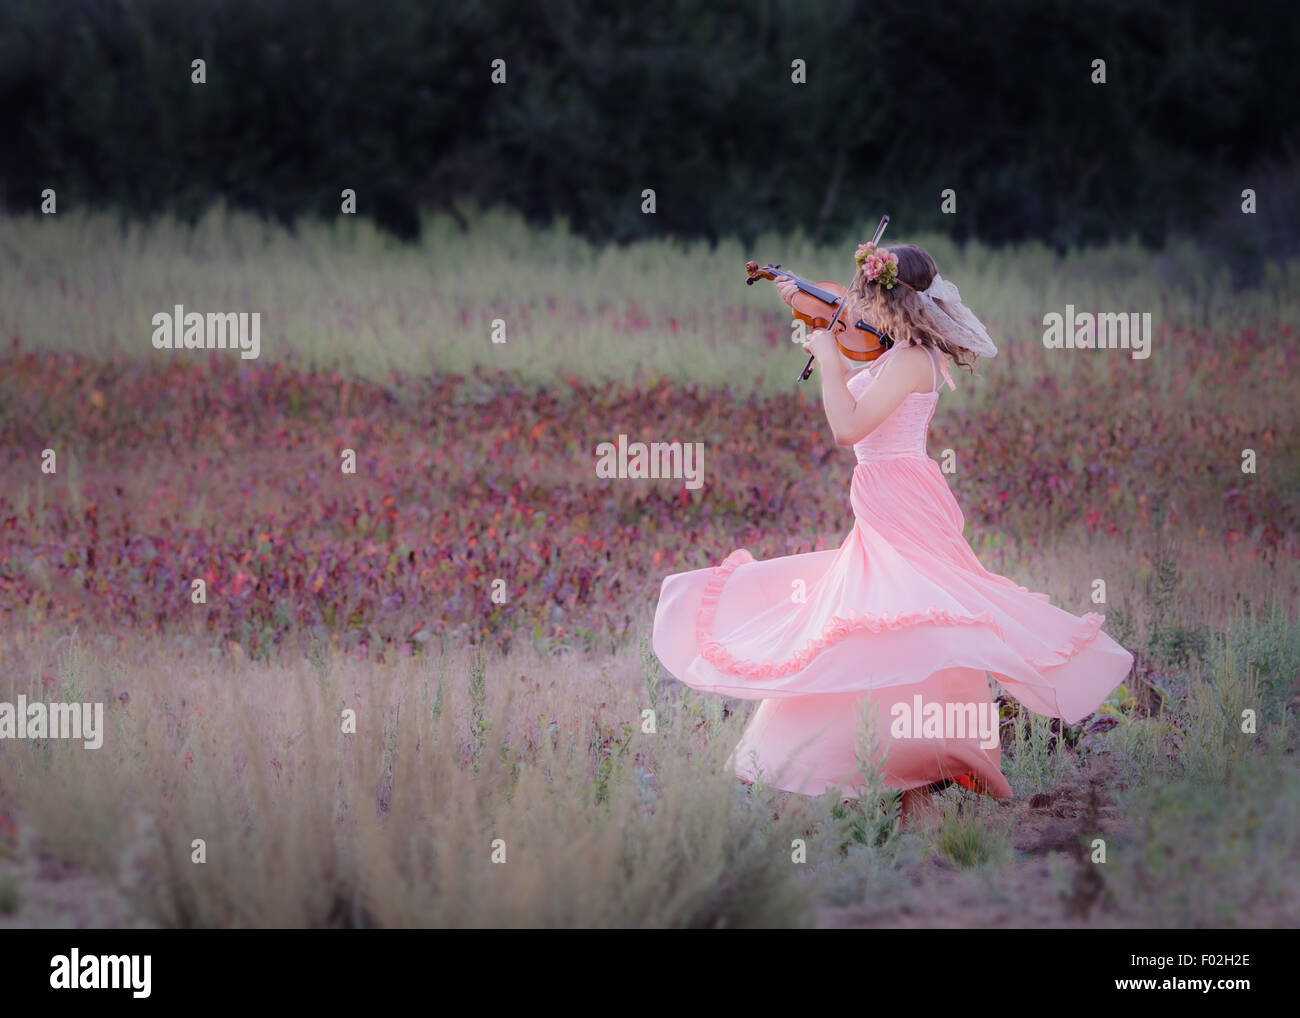 Girl dancing in a field whilst playing a violin - Stock Image